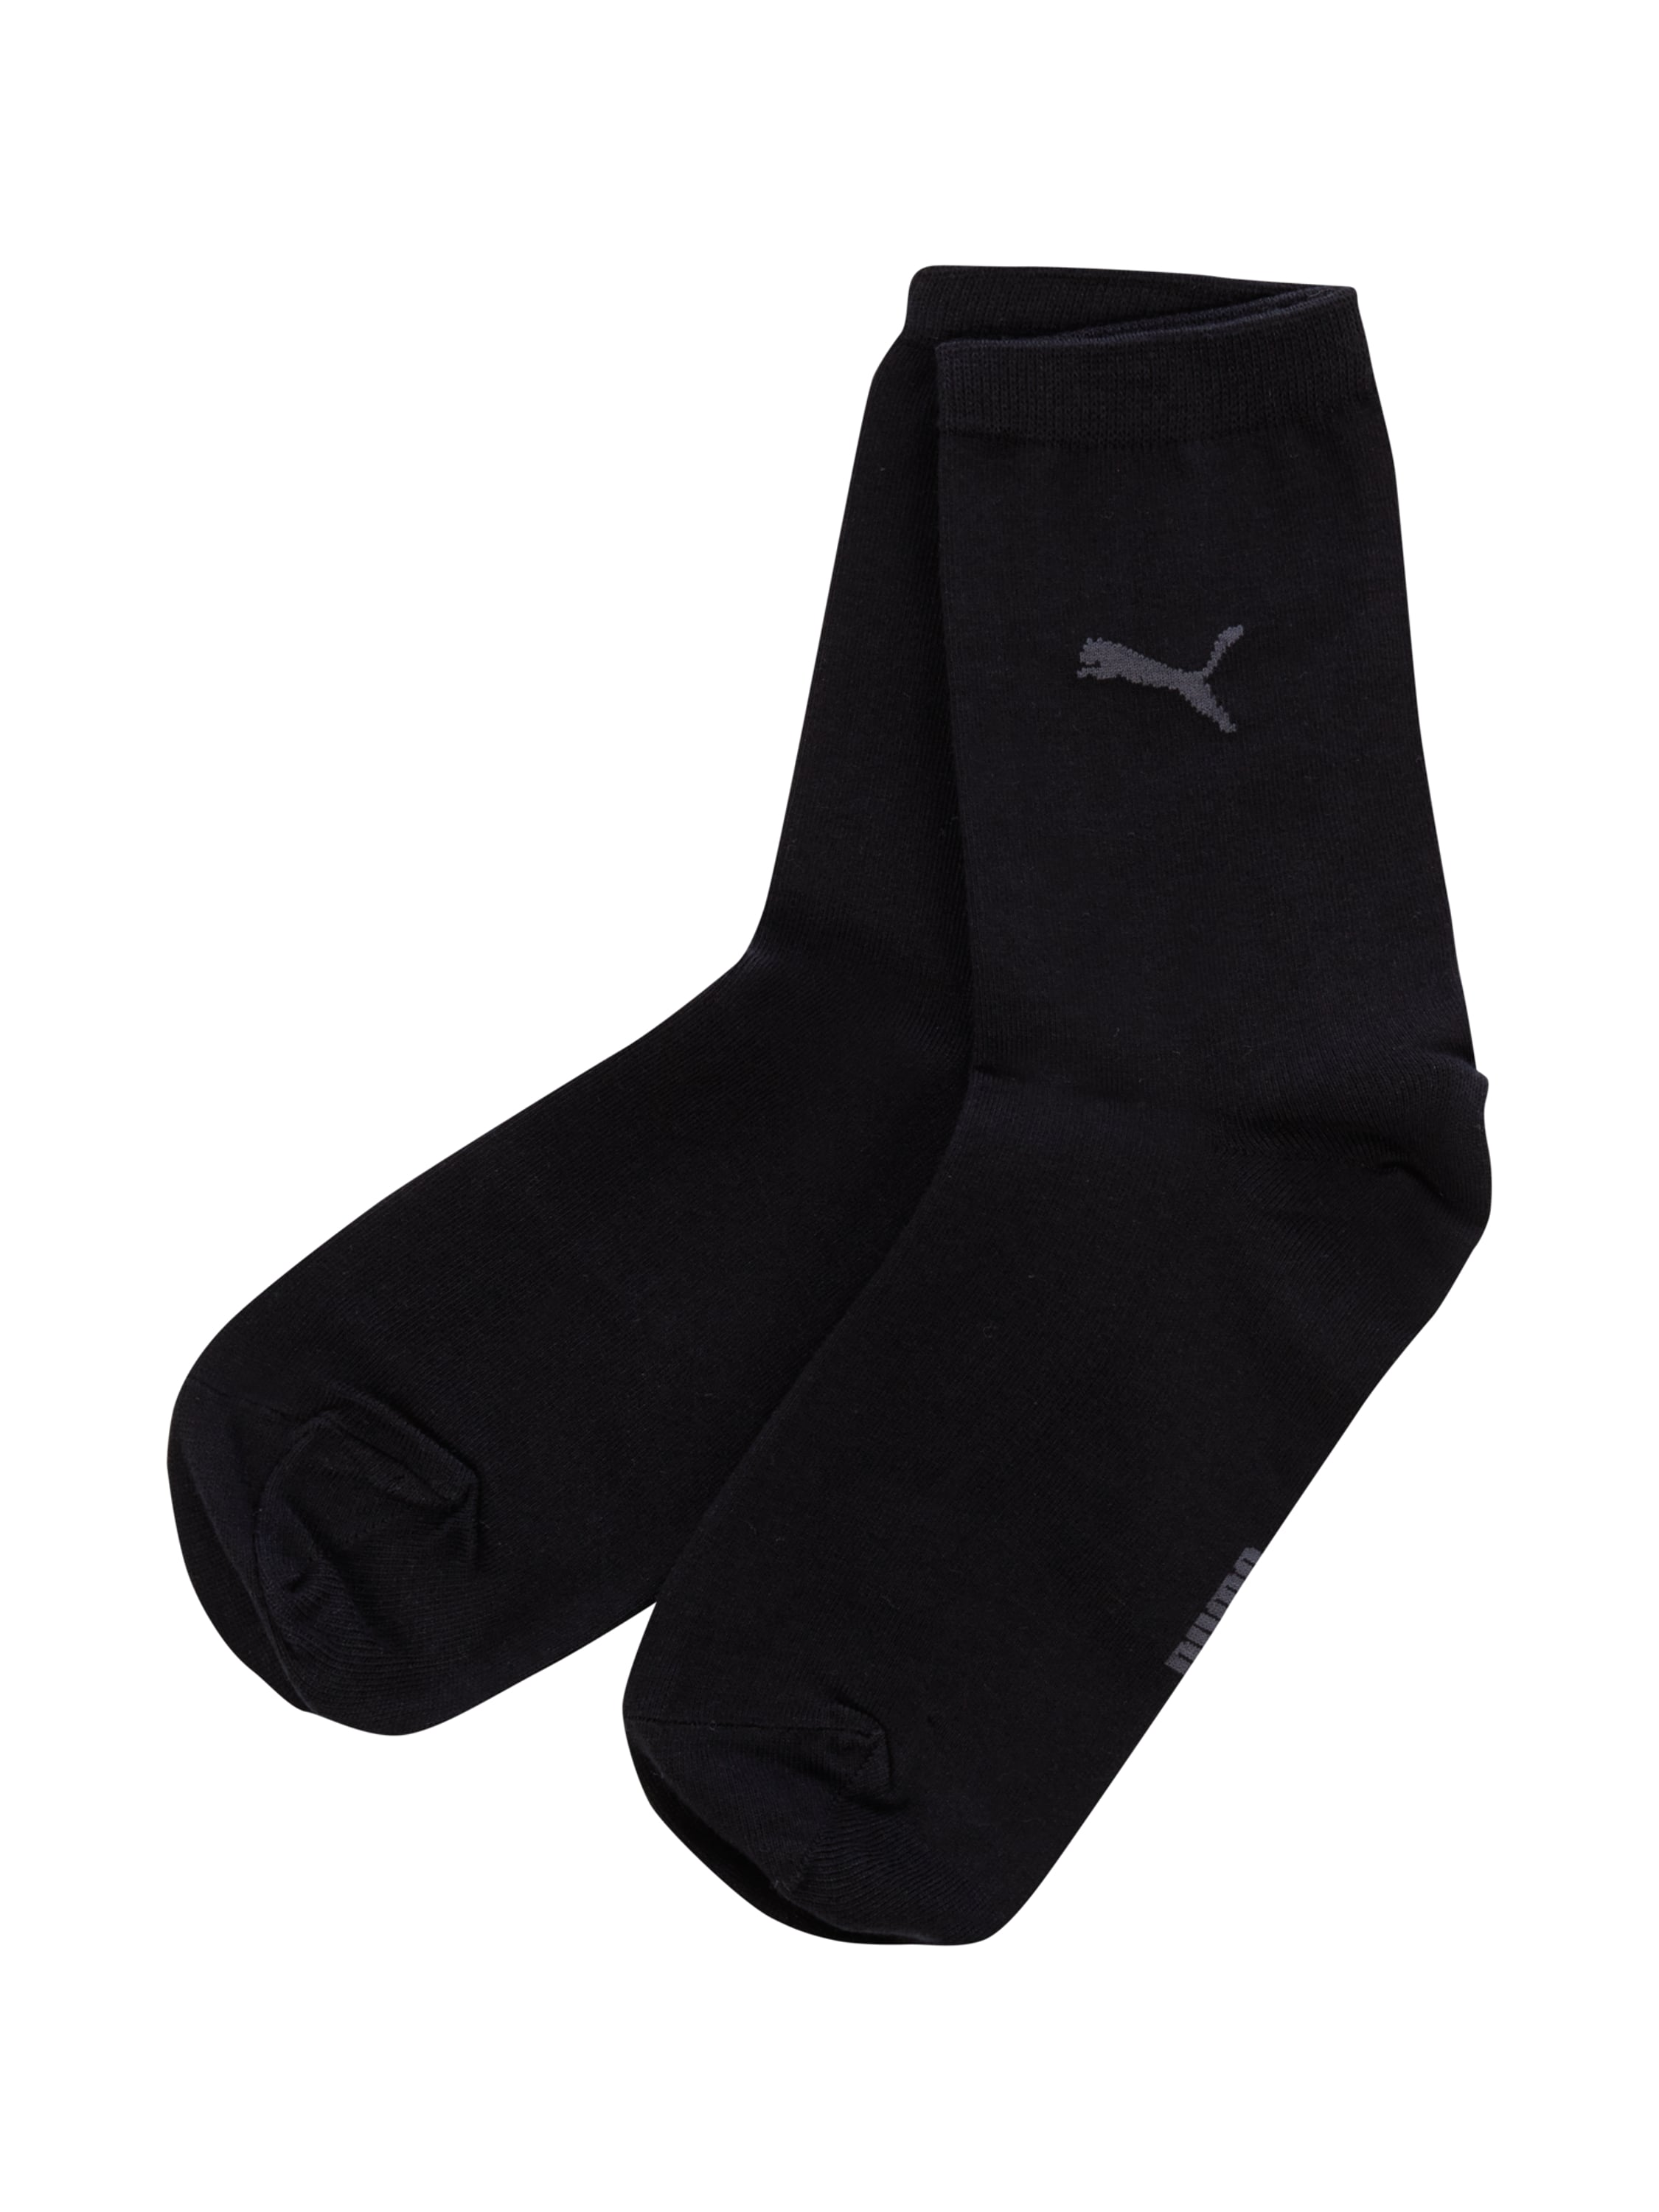 puma socken im 2er pack in grau schwarz online kaufen. Black Bedroom Furniture Sets. Home Design Ideas